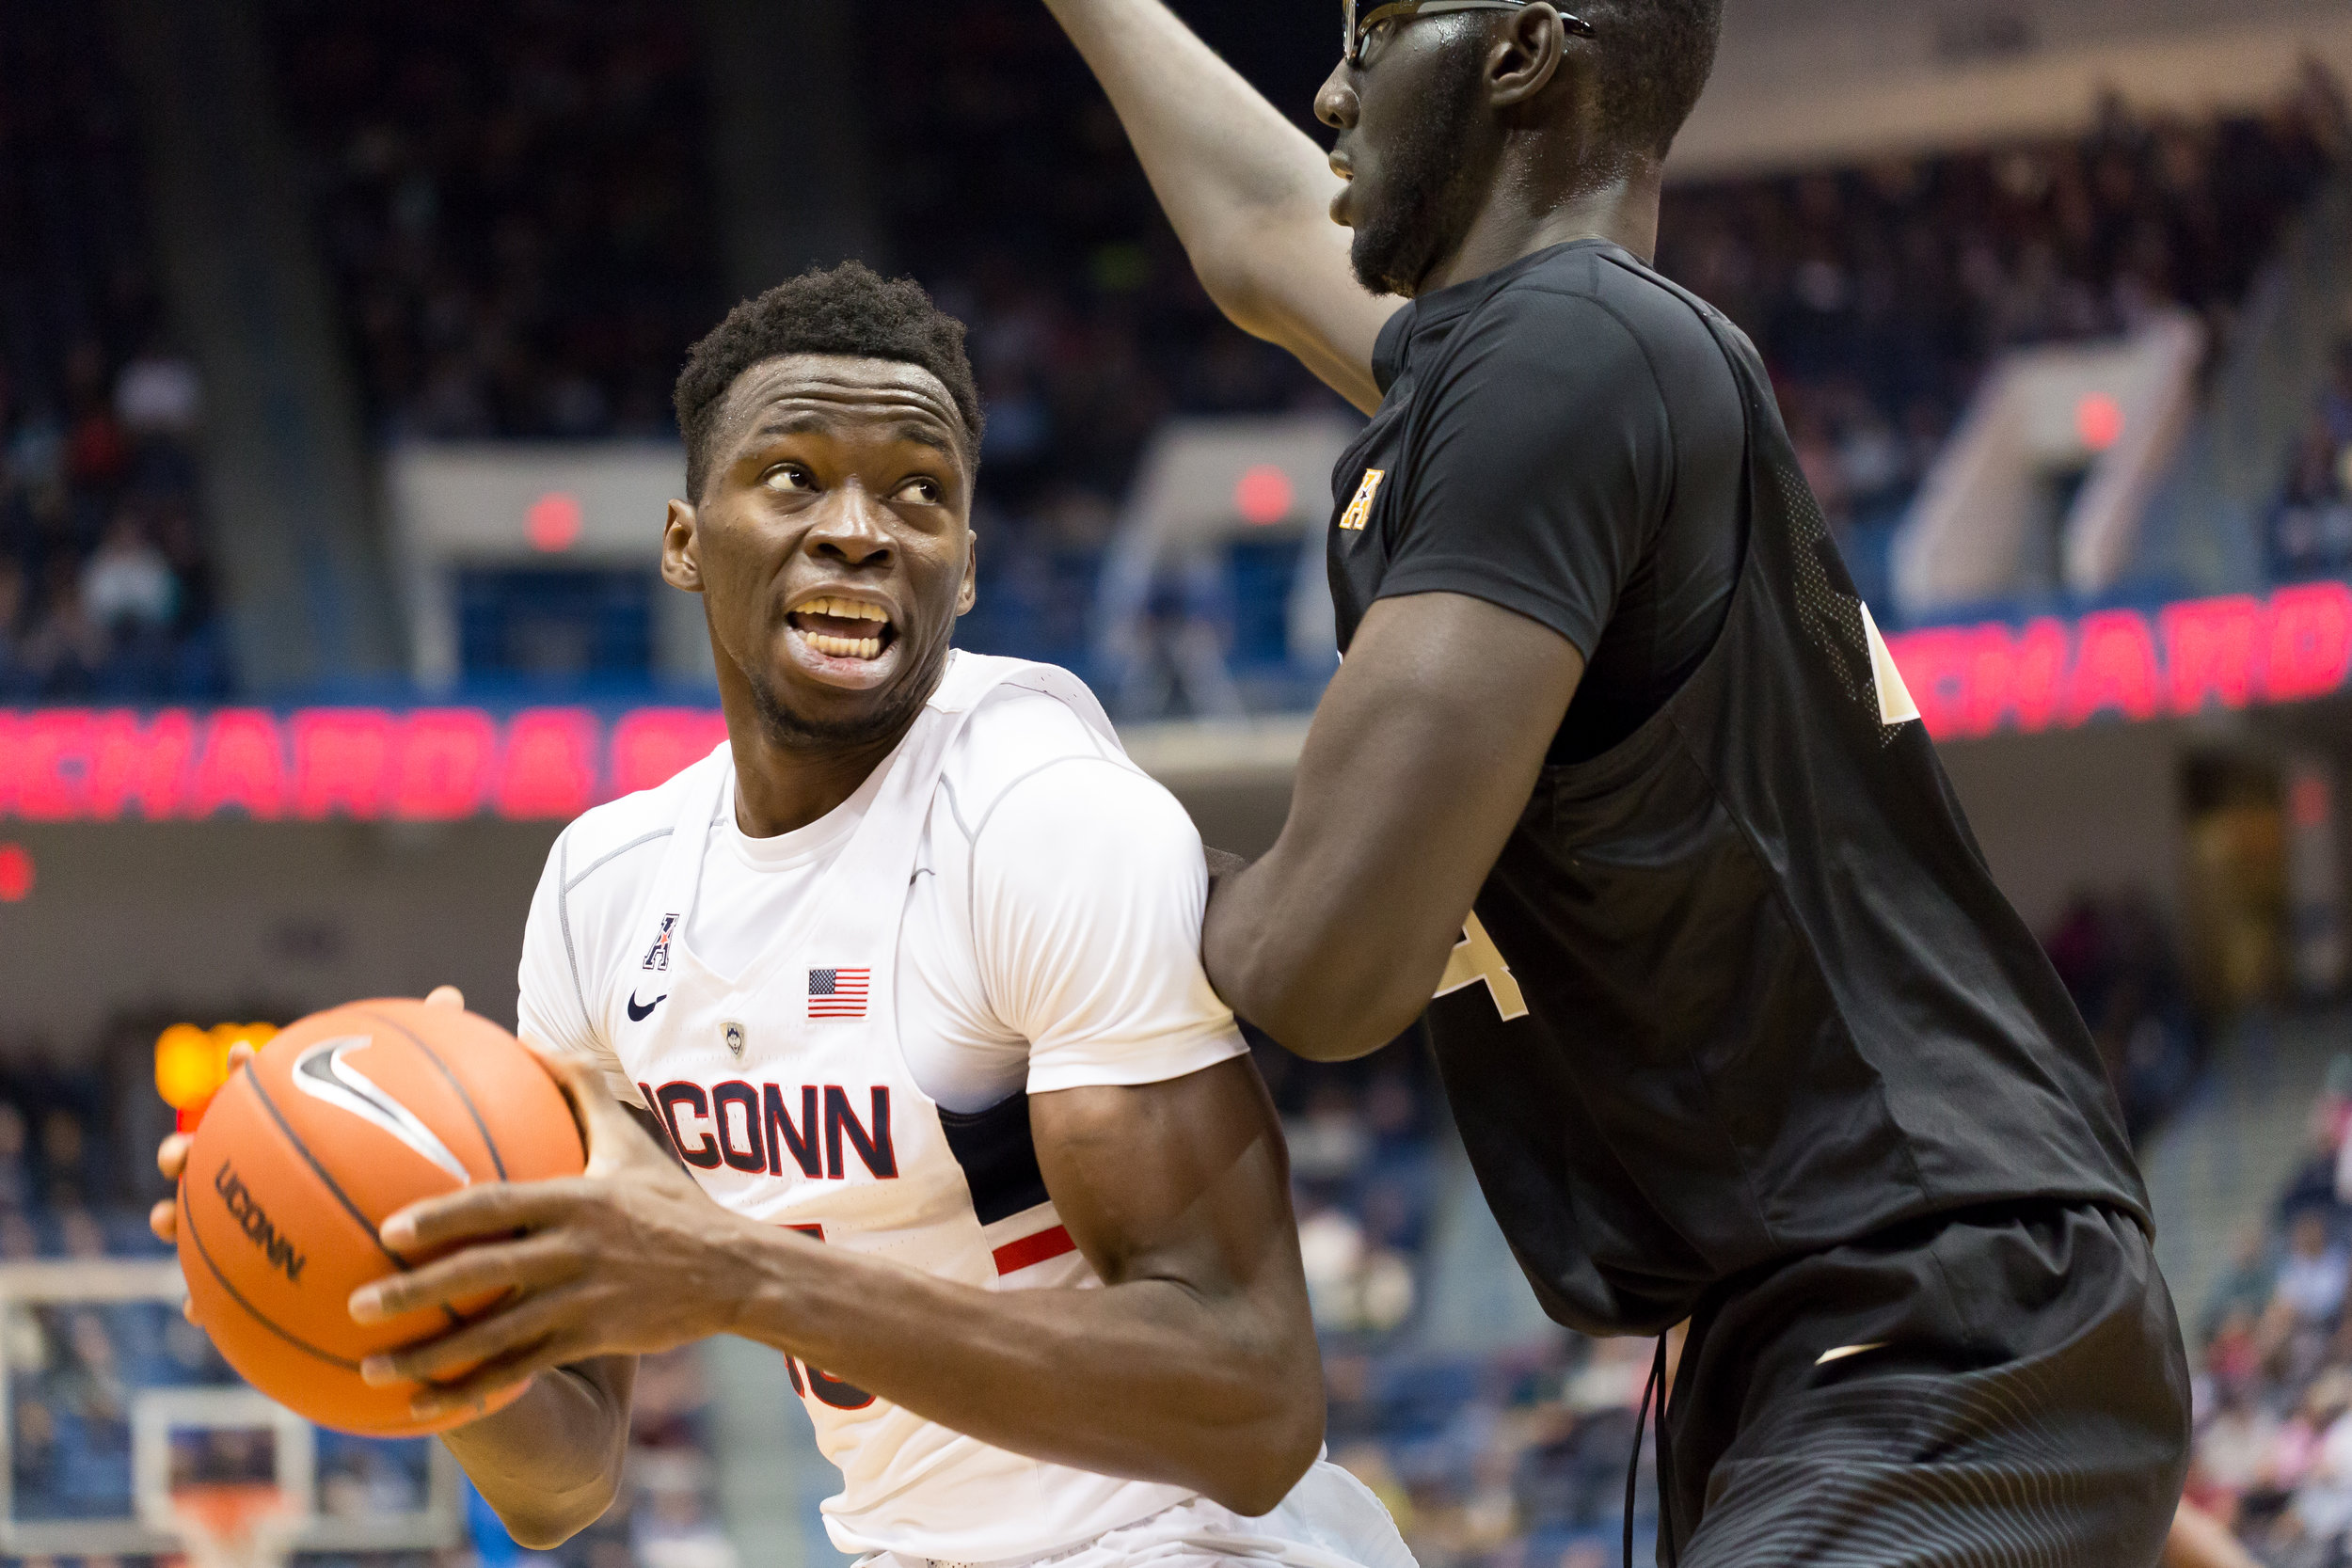 Amida Brimah goes up against 6-foot-7 Tacko Fall during UConn's 64-49 win over UCF on Sunday, Jan. 8, 2017 at the XL Center in Hartford. Brimah had nine points and five blocks in the victory and helped keep Fall at bay, holding him to zero points. (Tyler Benton/The Daily Campus)